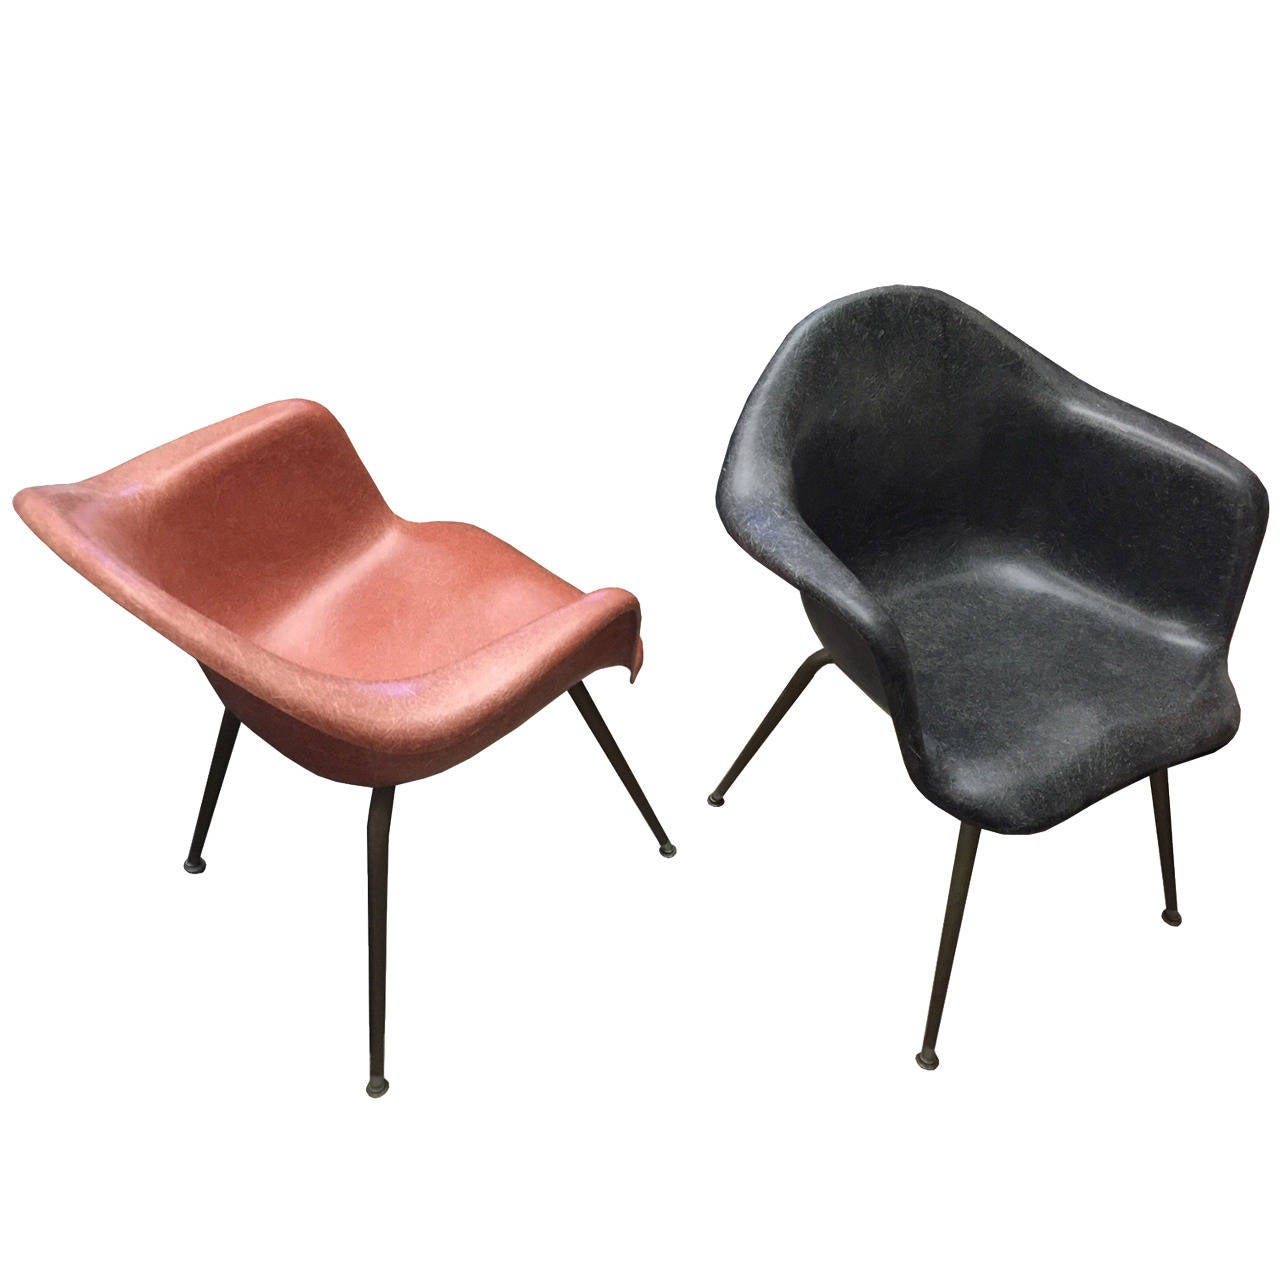 Chromcraft Chairs Mid Century Vintage Eames Era Fiberglass Shell Arm Chairs